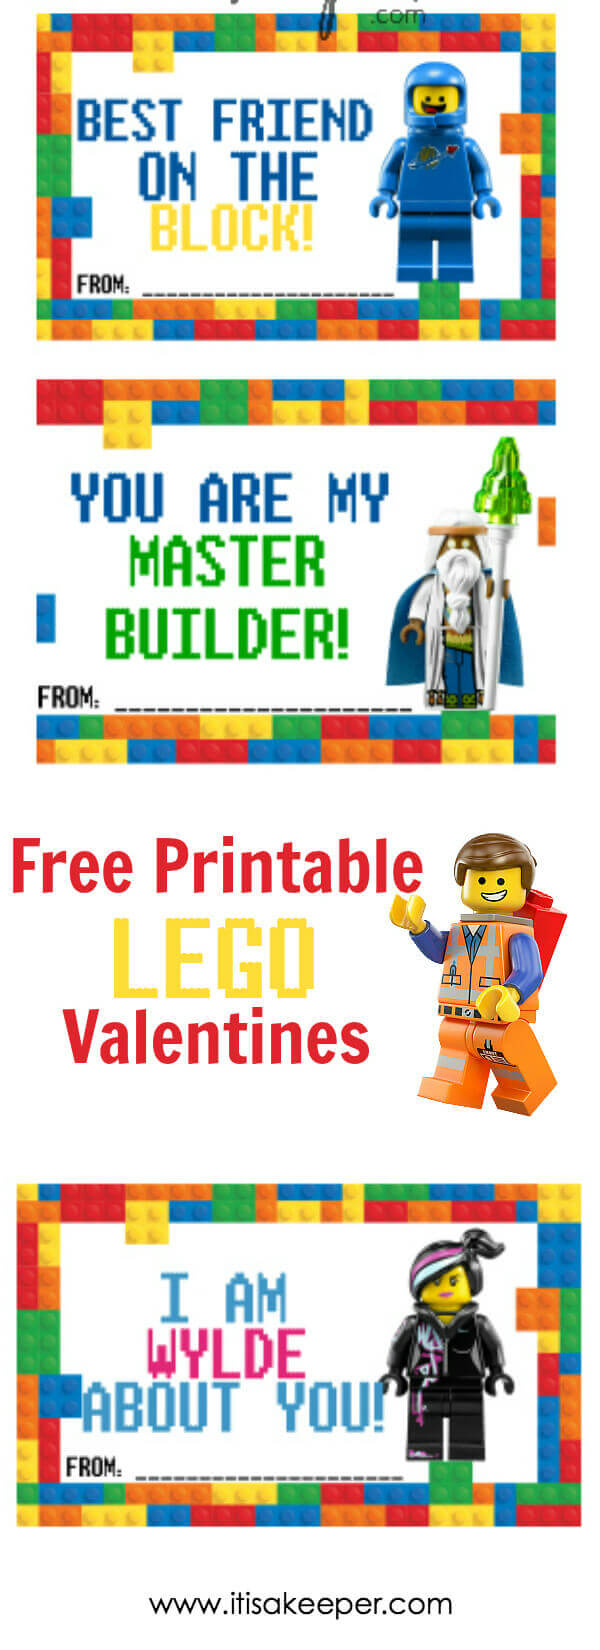 Lego Valentine Cards - Free Printable | It Is A Keeper - Free Printable Lego Star Wars Valentines